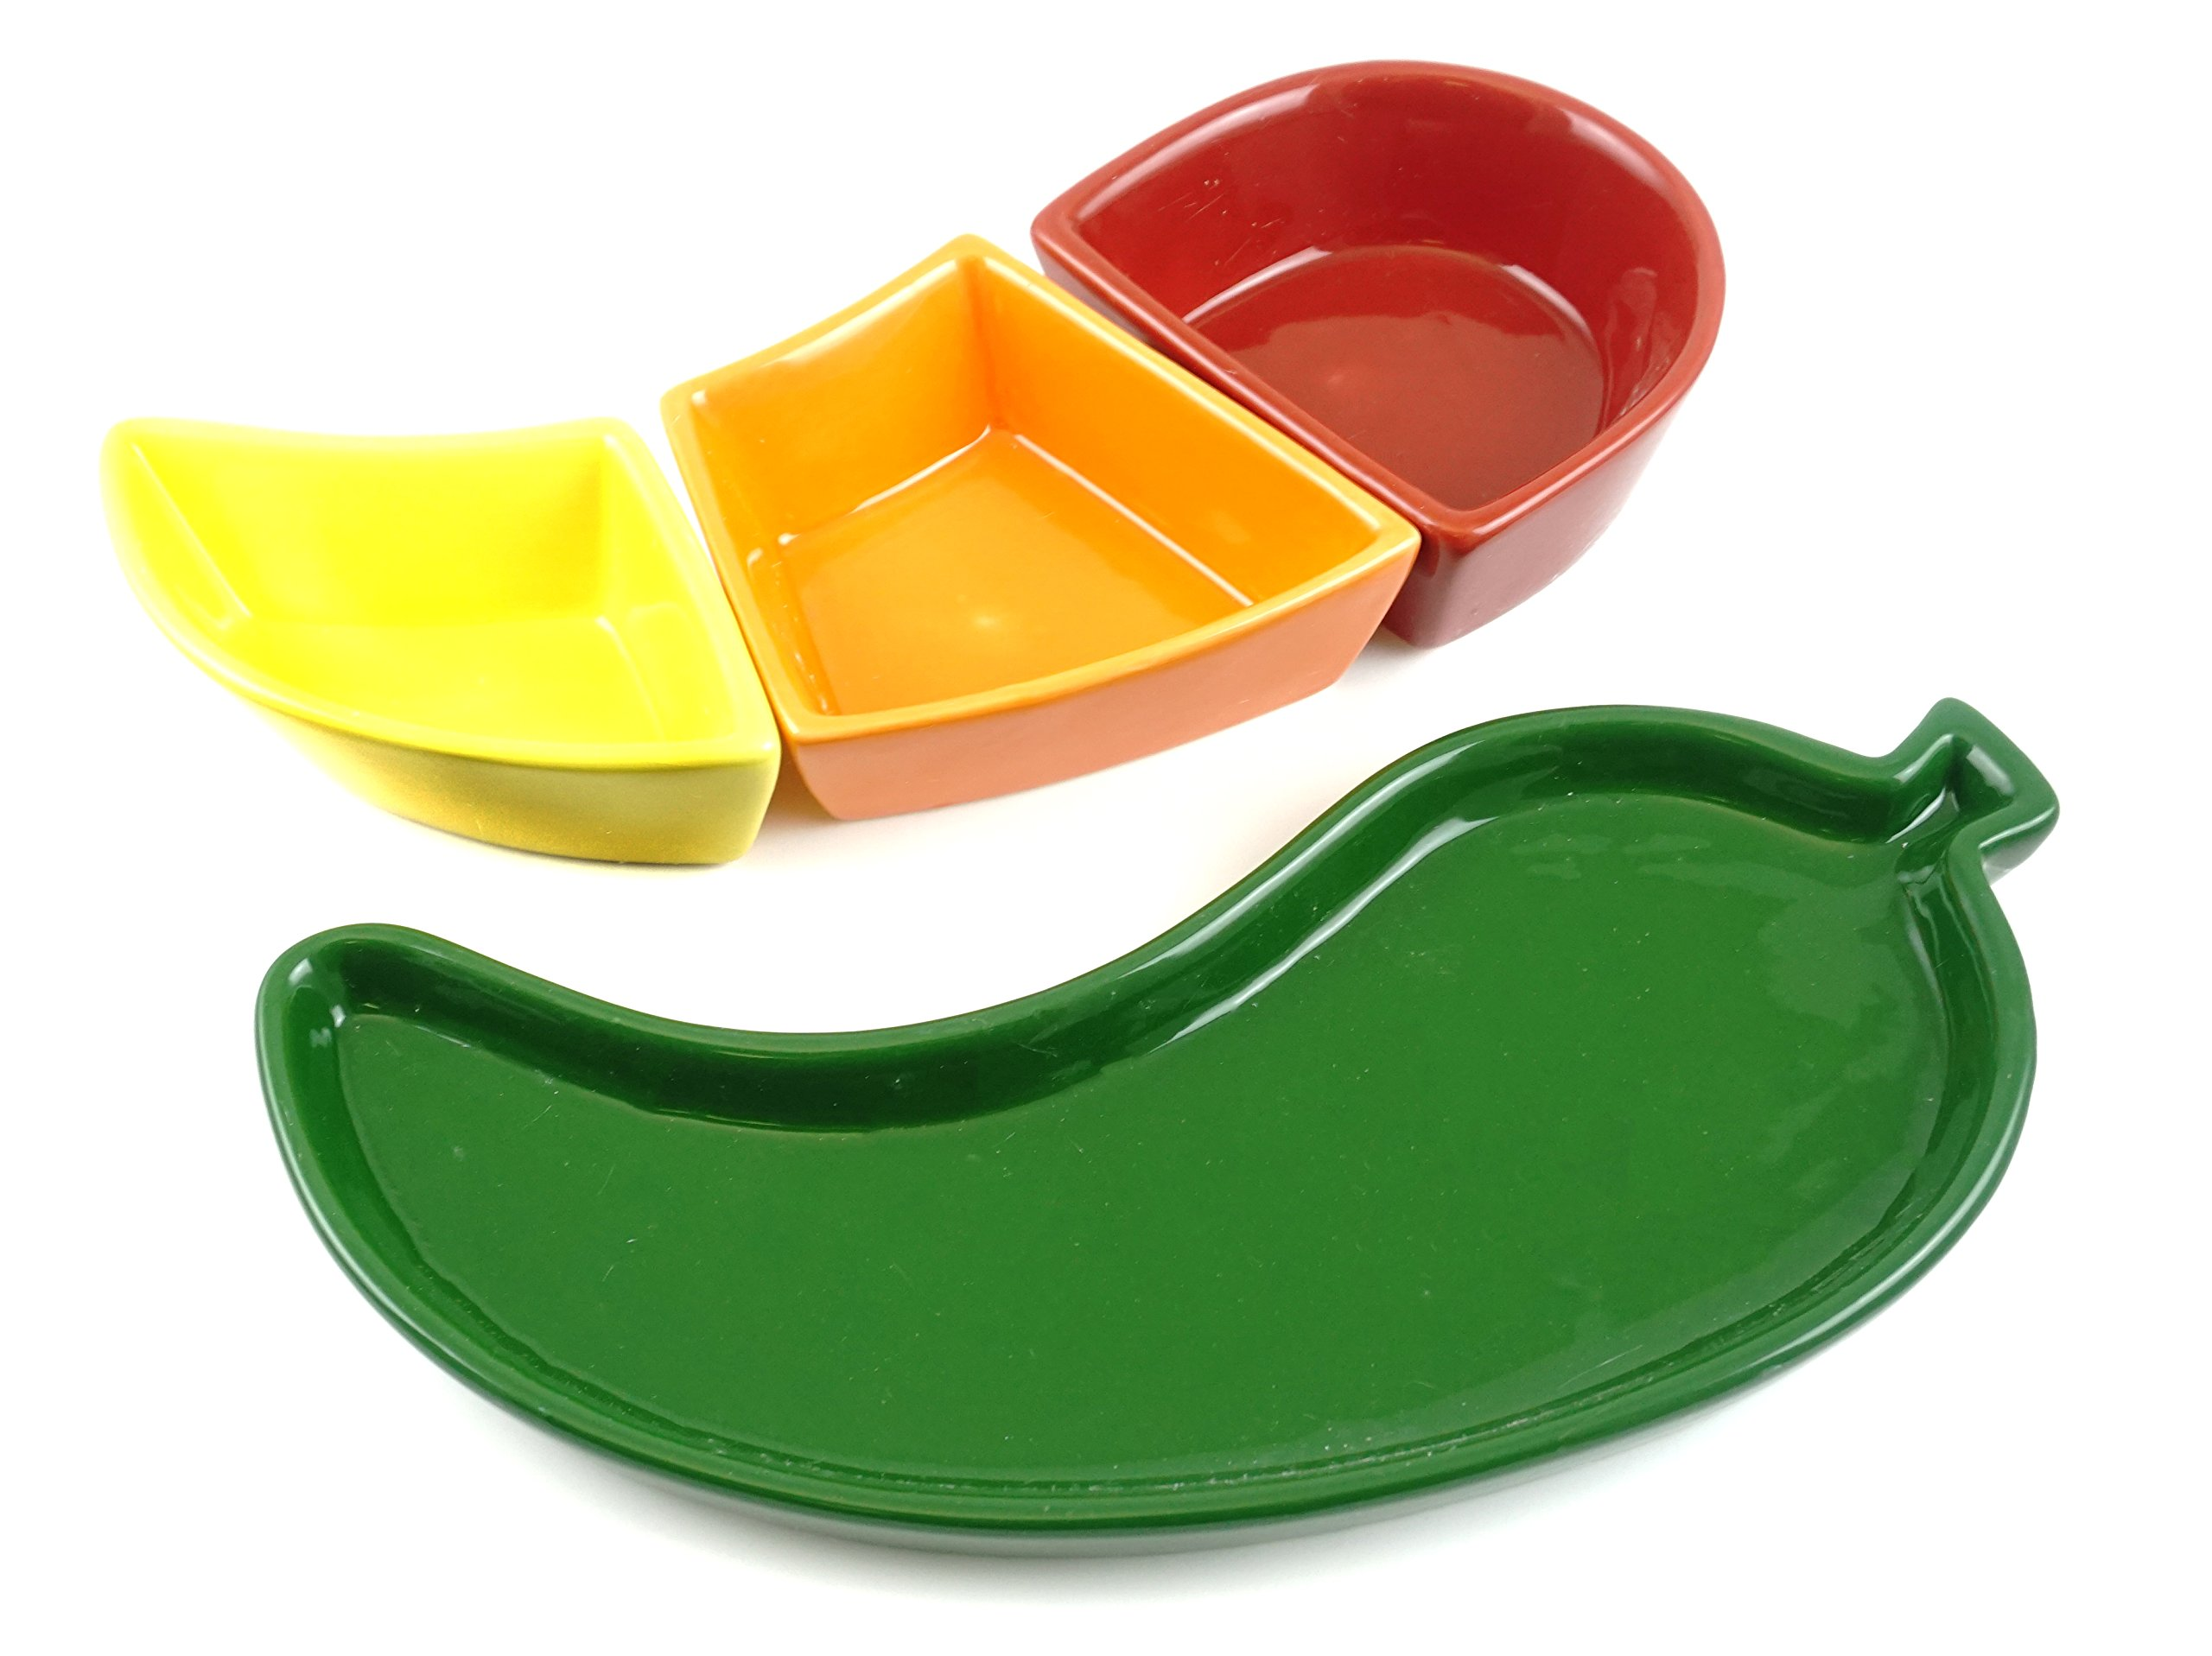 Fiesta Chili Pepper Tray with Stackable Dip Salsa Bowl Dish Set by Meadow Farms (Image #1)